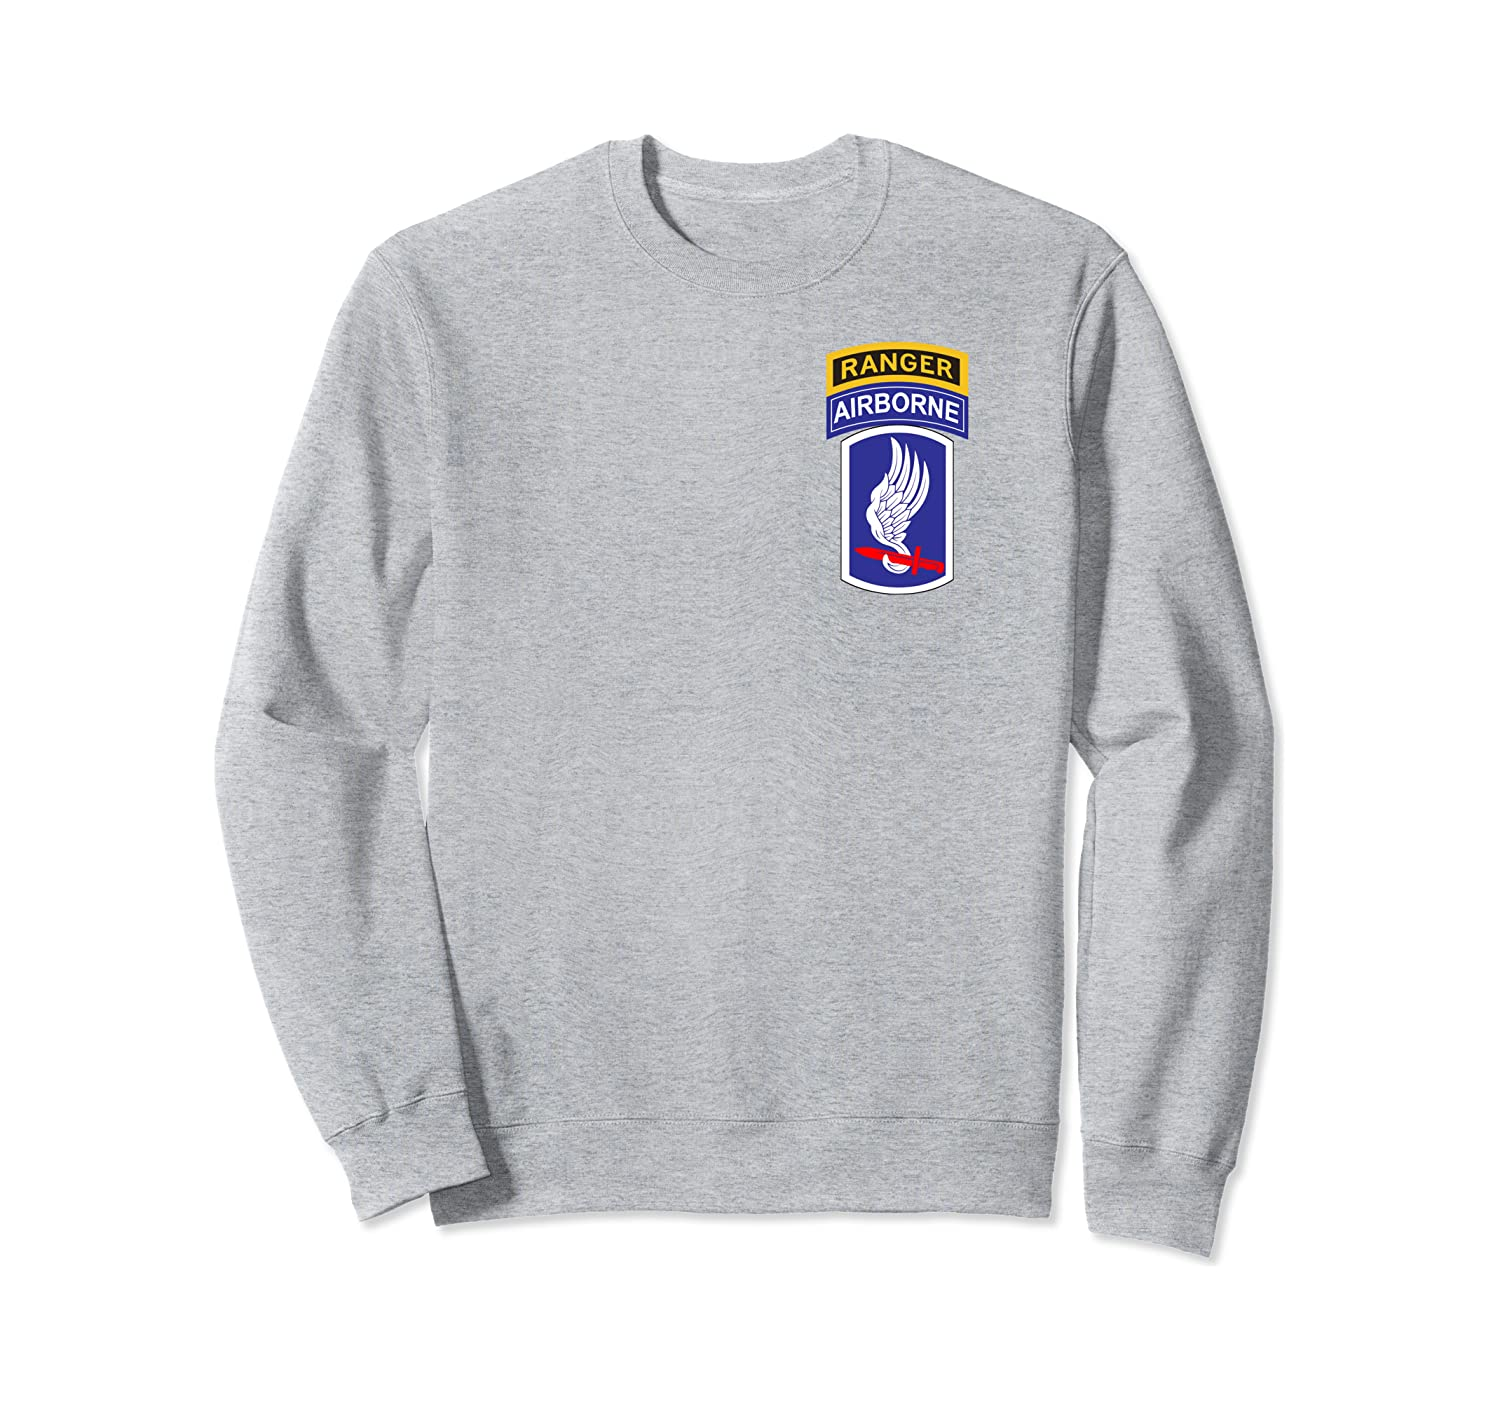 173rd Airborne Patch and Ranger Tab  Sweatshirt